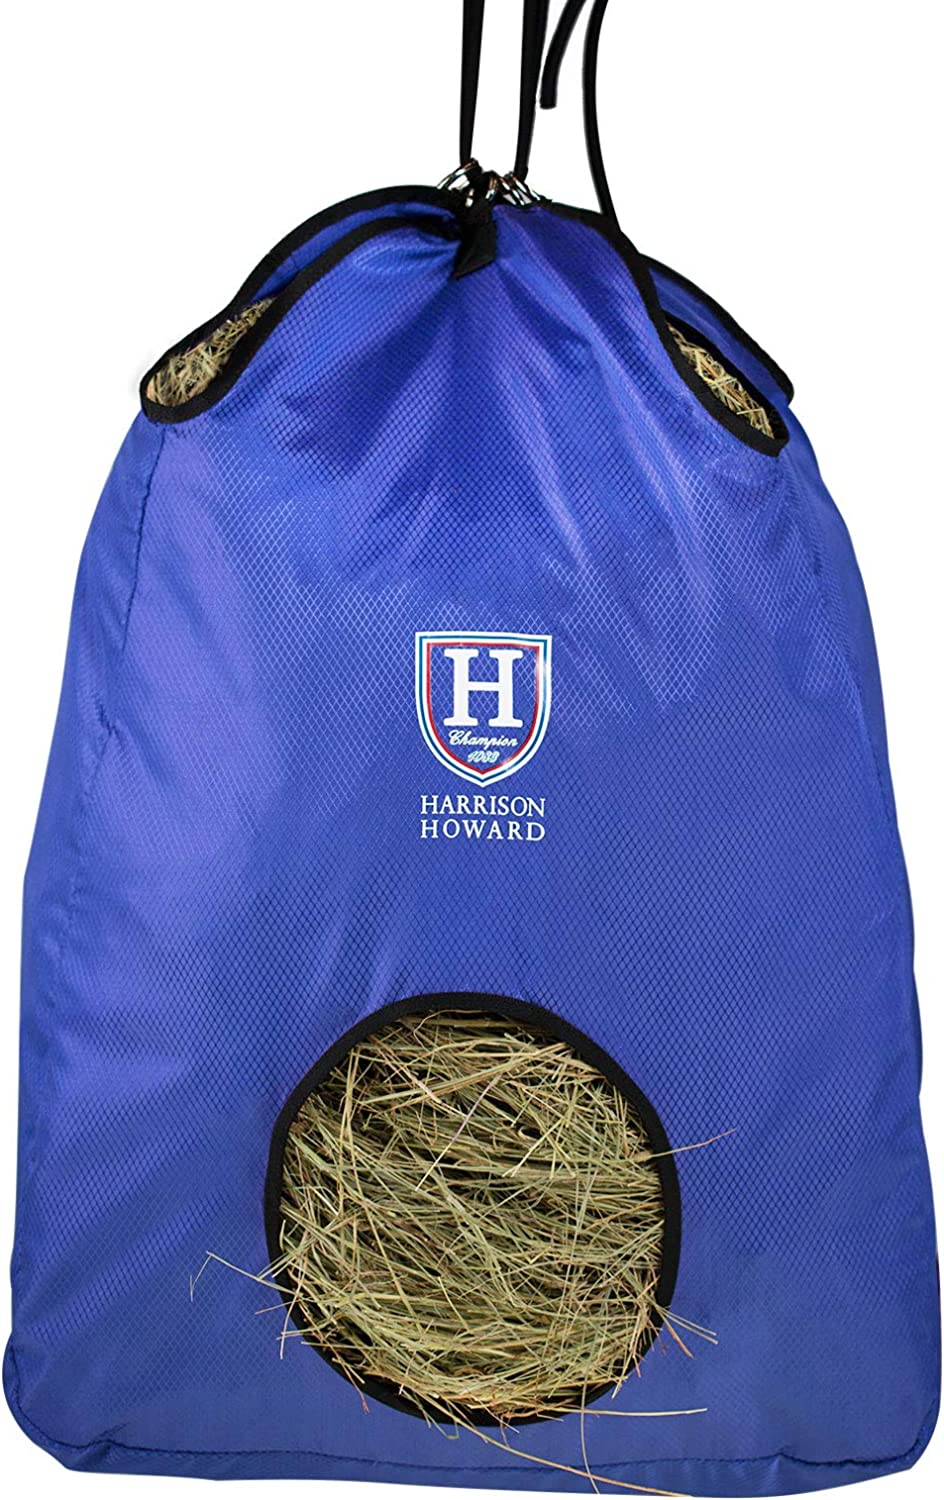 Harrison Howard Horse Hay Bags Durable Slow Feed Hay Bag Horse Tote Bag with Large Capacity